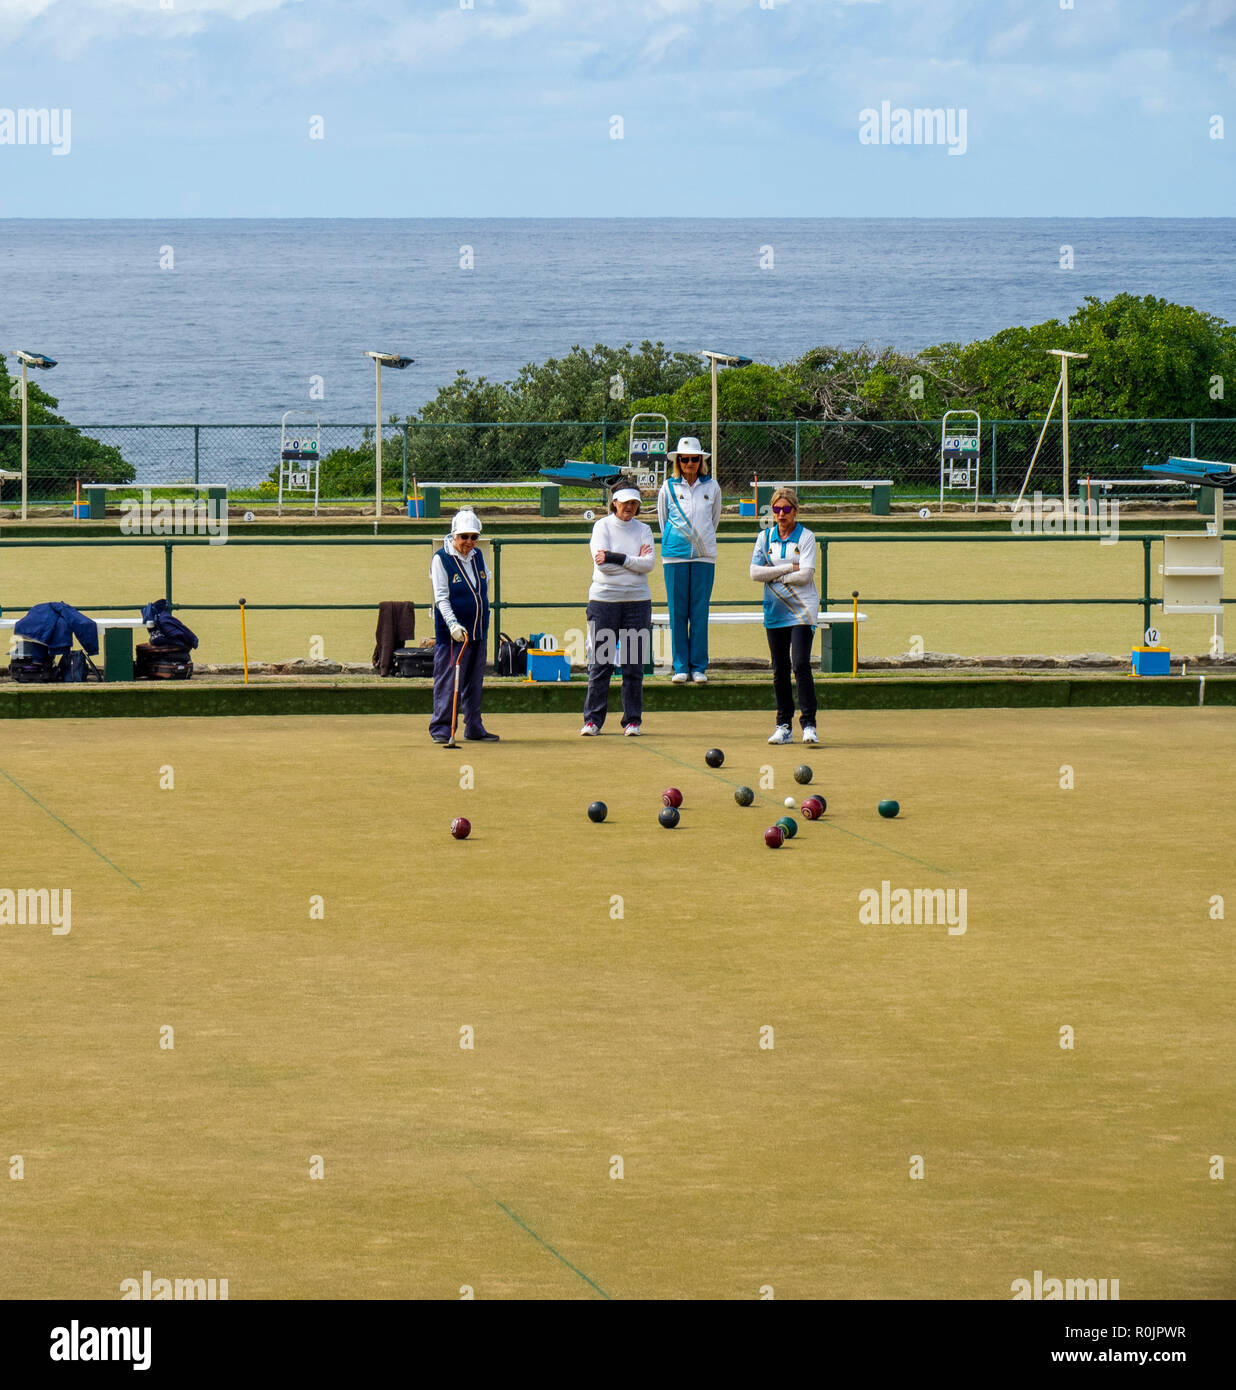 Four middle age to elderly women playing lawn bowls at Clovelly Bowling and Recreation Club Sydney NSW Australia. - Stock Image